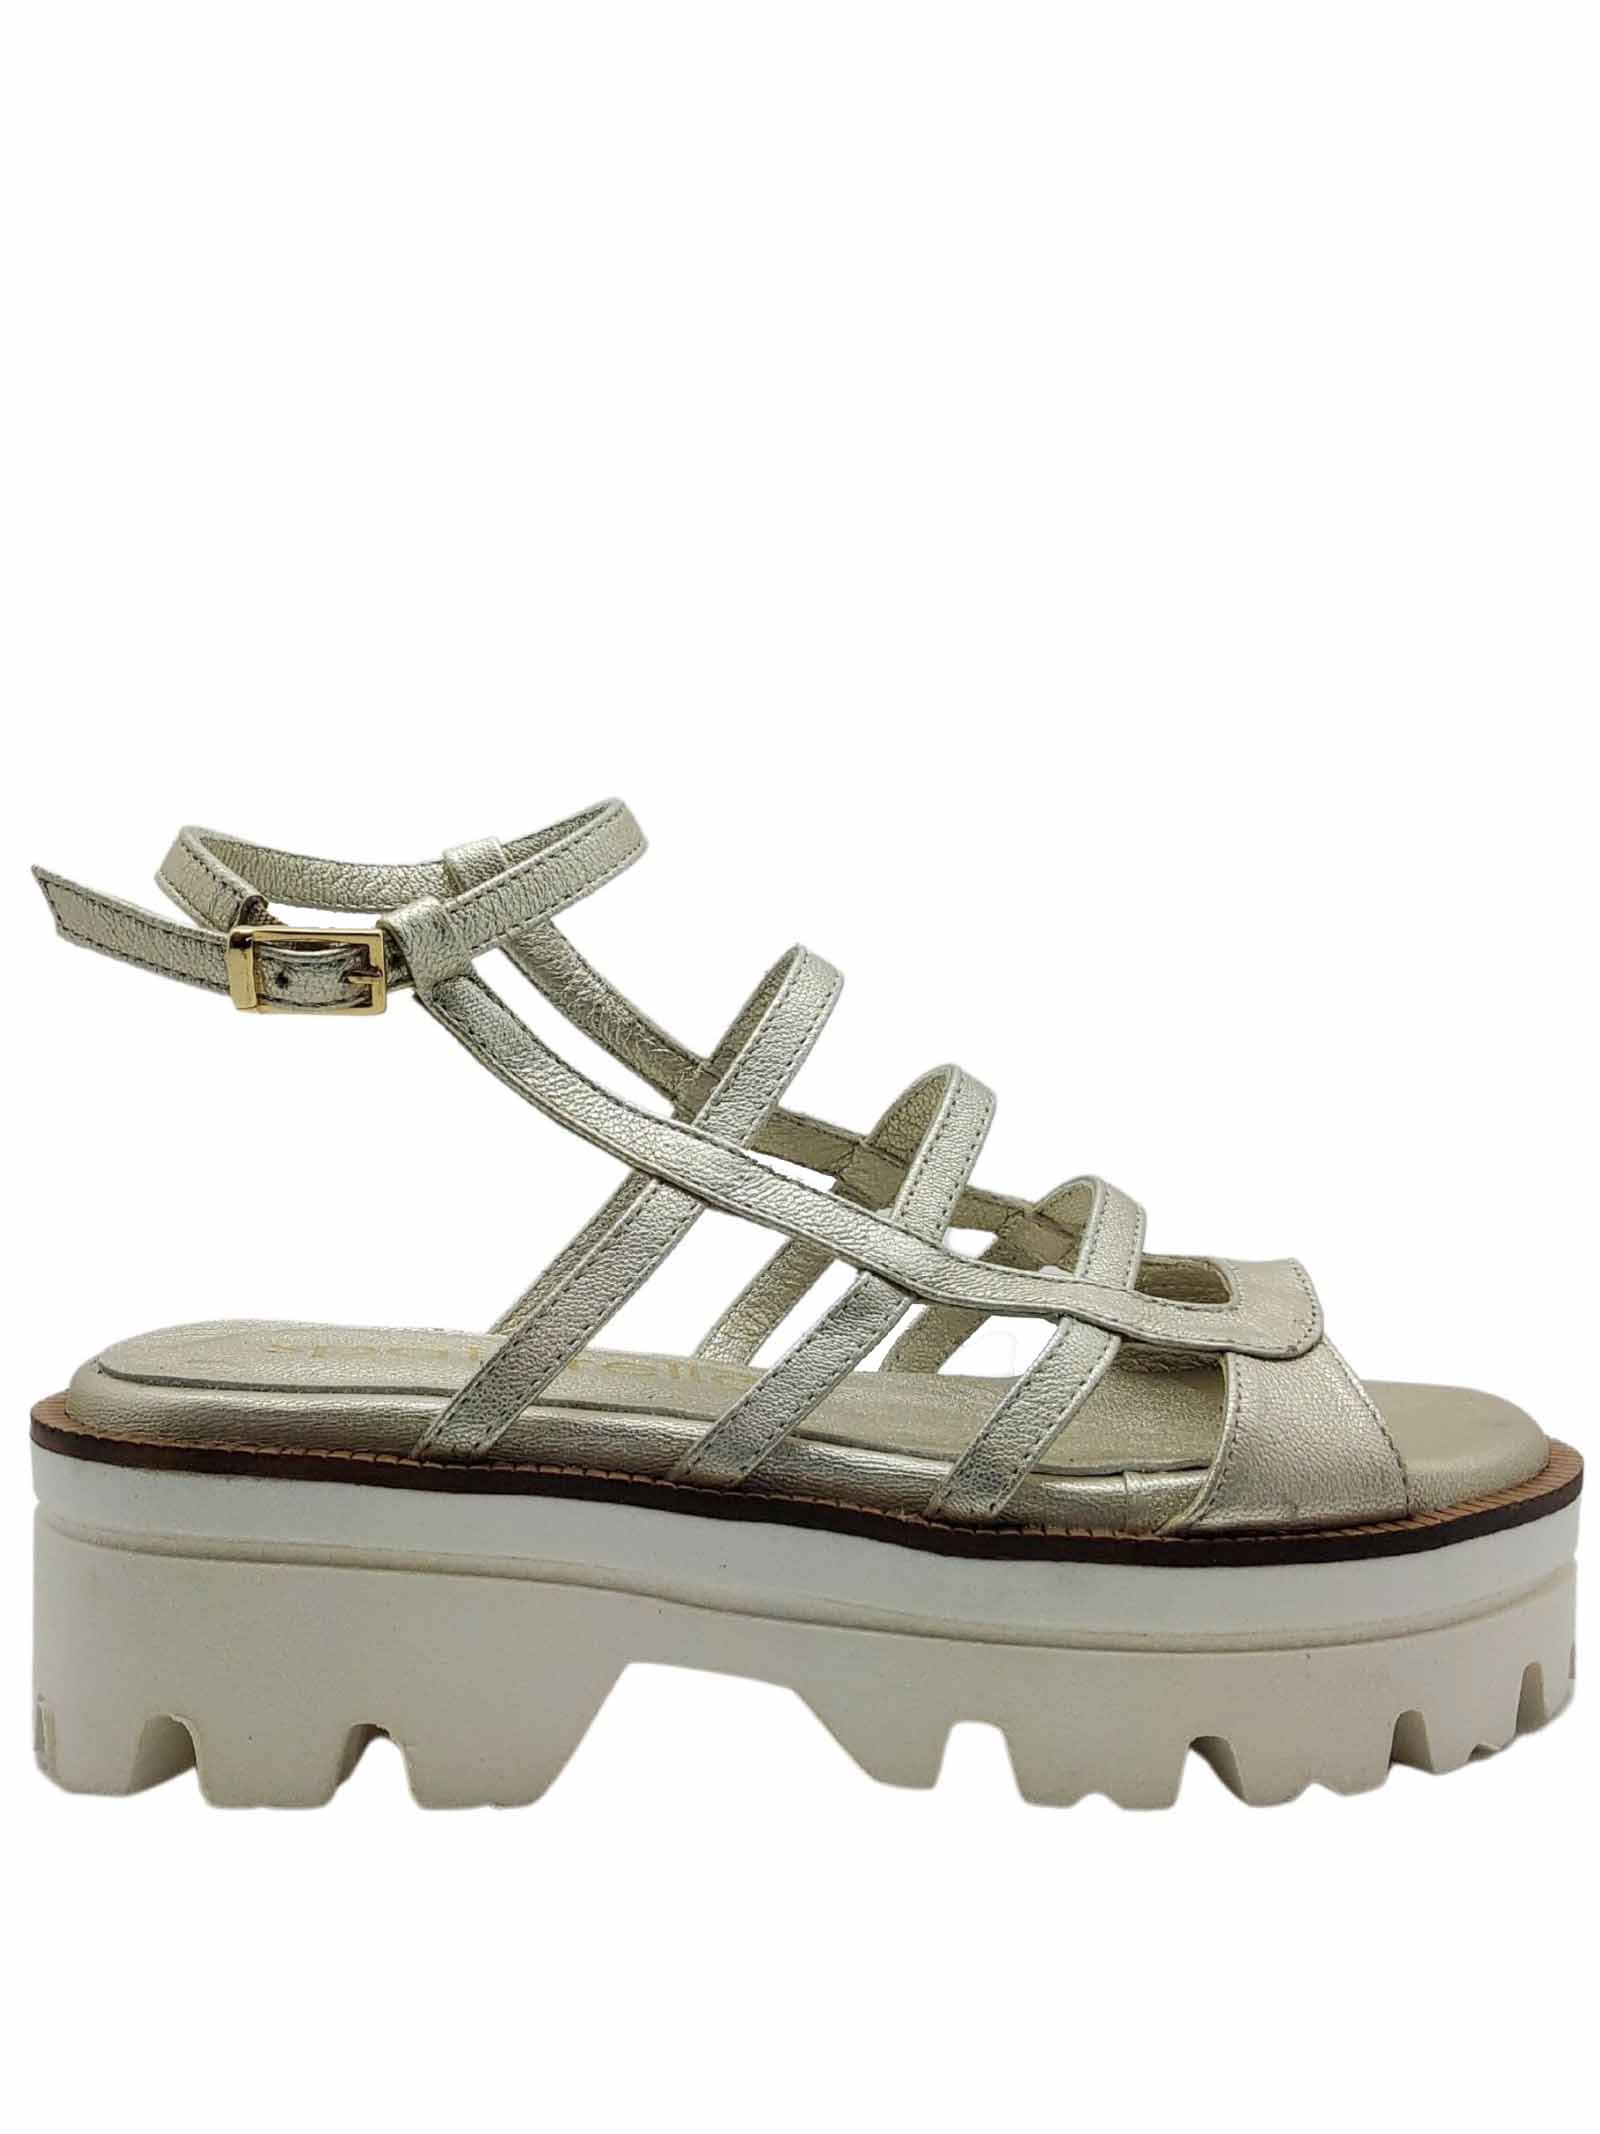 Women's Shoes Platinum Laminated Leather Sandals with Ankle Strap and Carrarmato Bottom Spatarella | Wedge Sandals | 18BIS600